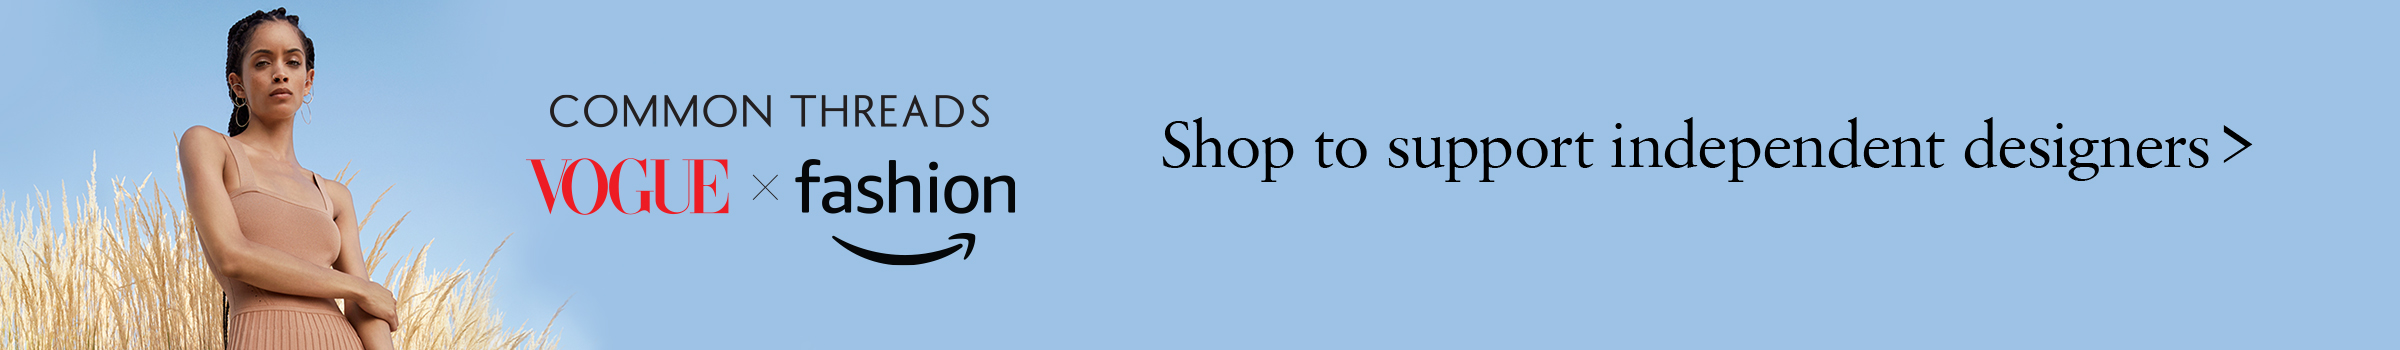 Shop to support independent designers